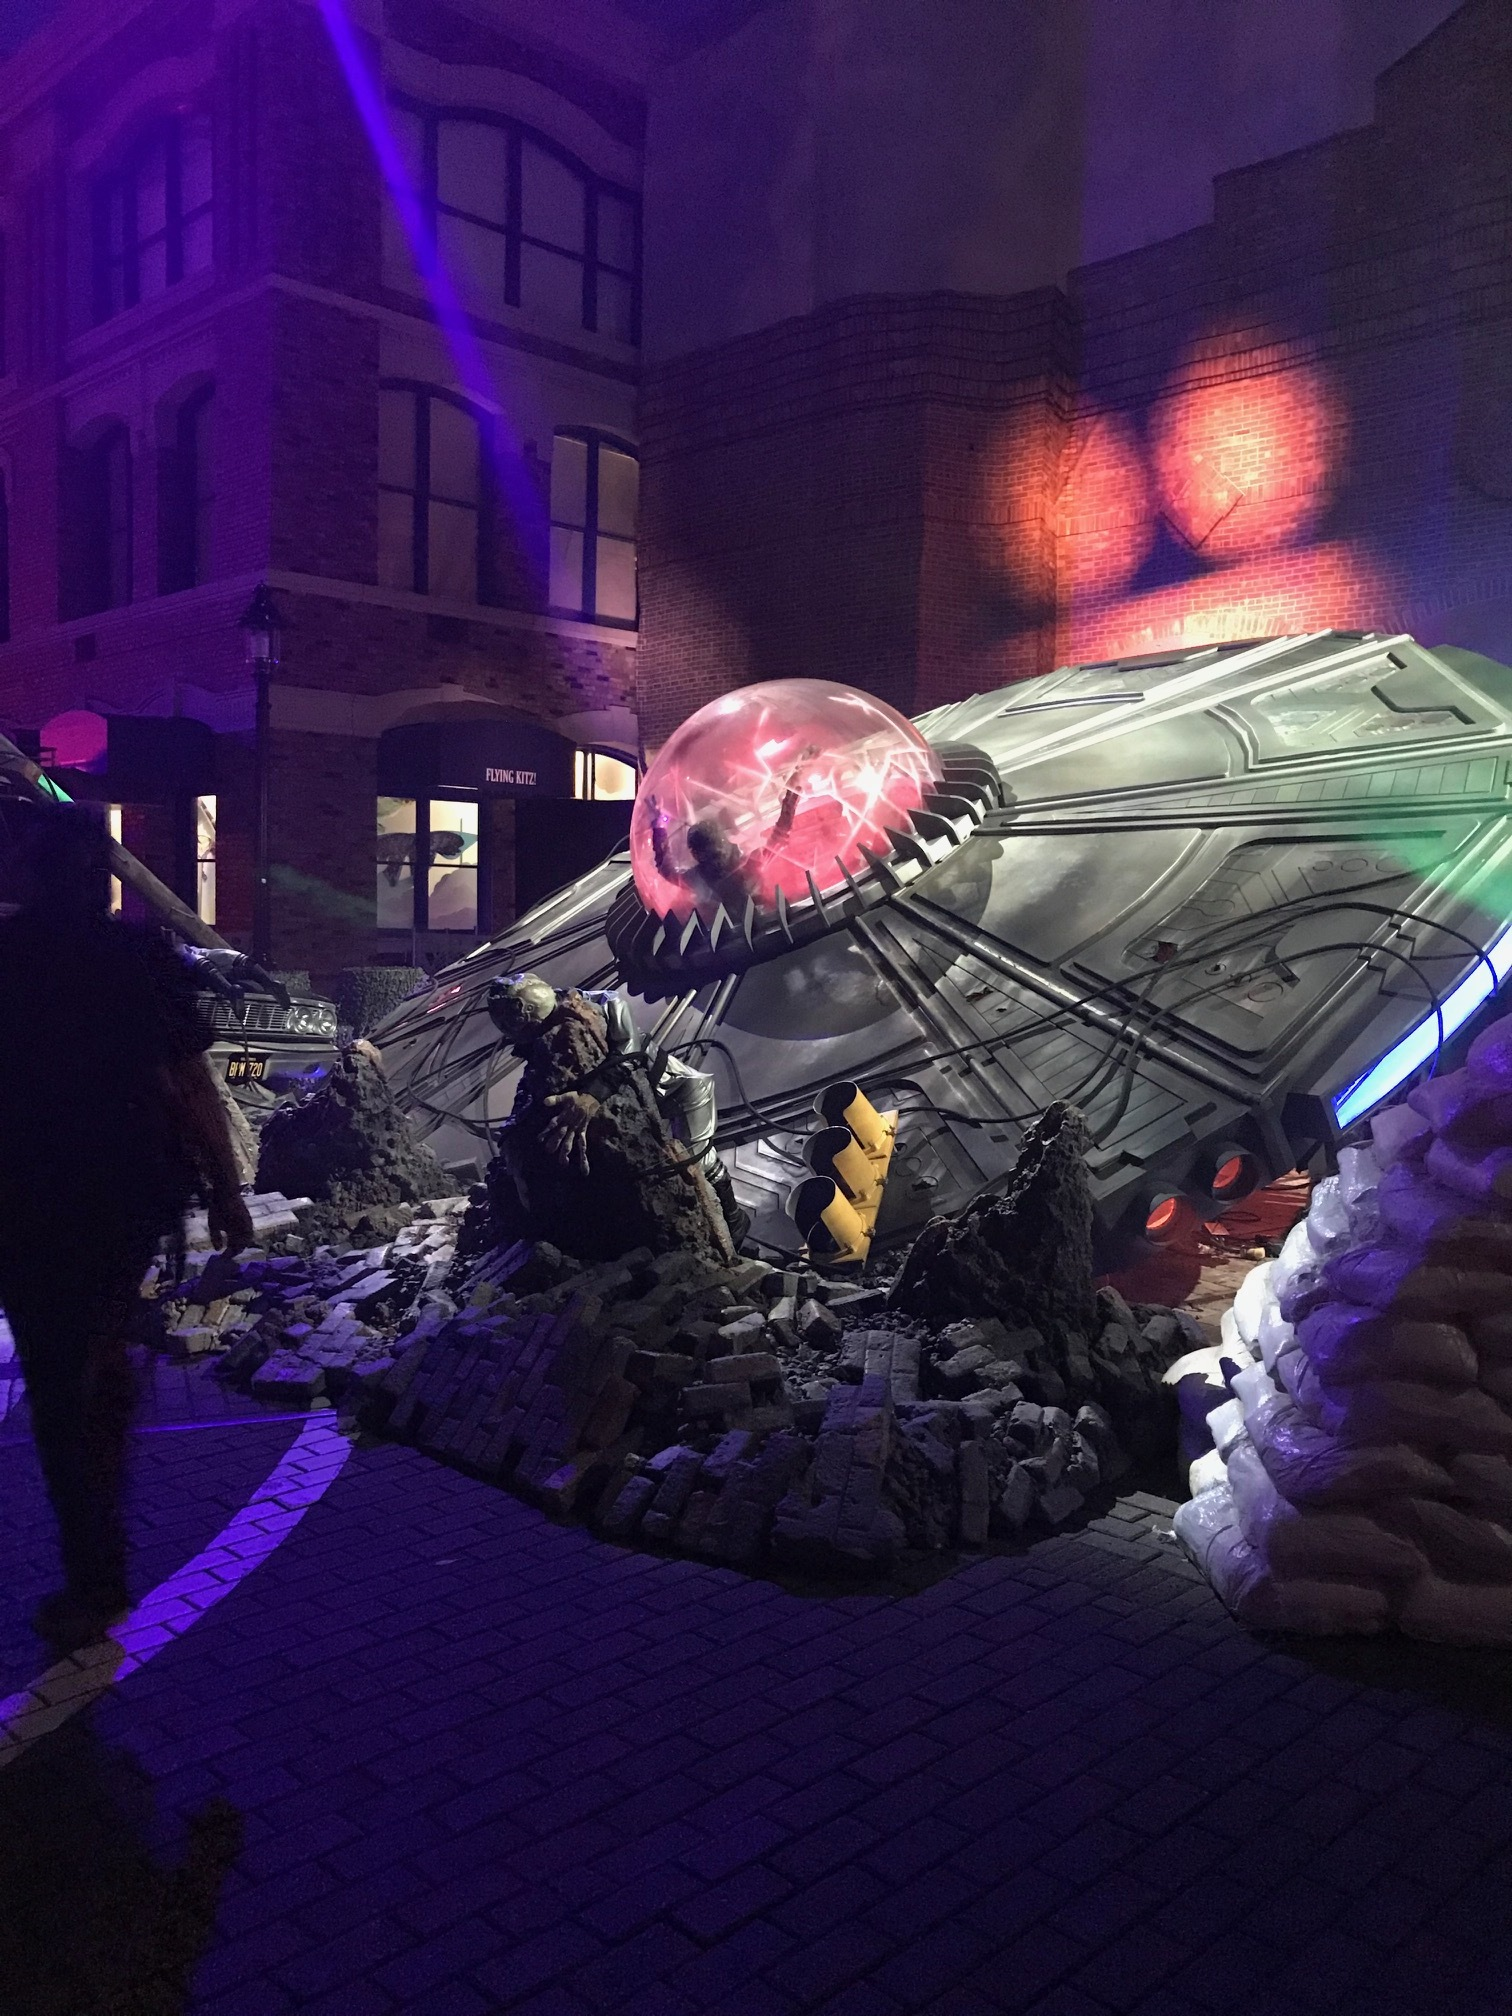 """The """"Invasion!"""" display at Halloween Horror Nights is straight out of your favorite science fiction movies. (Zach Christensen)"""